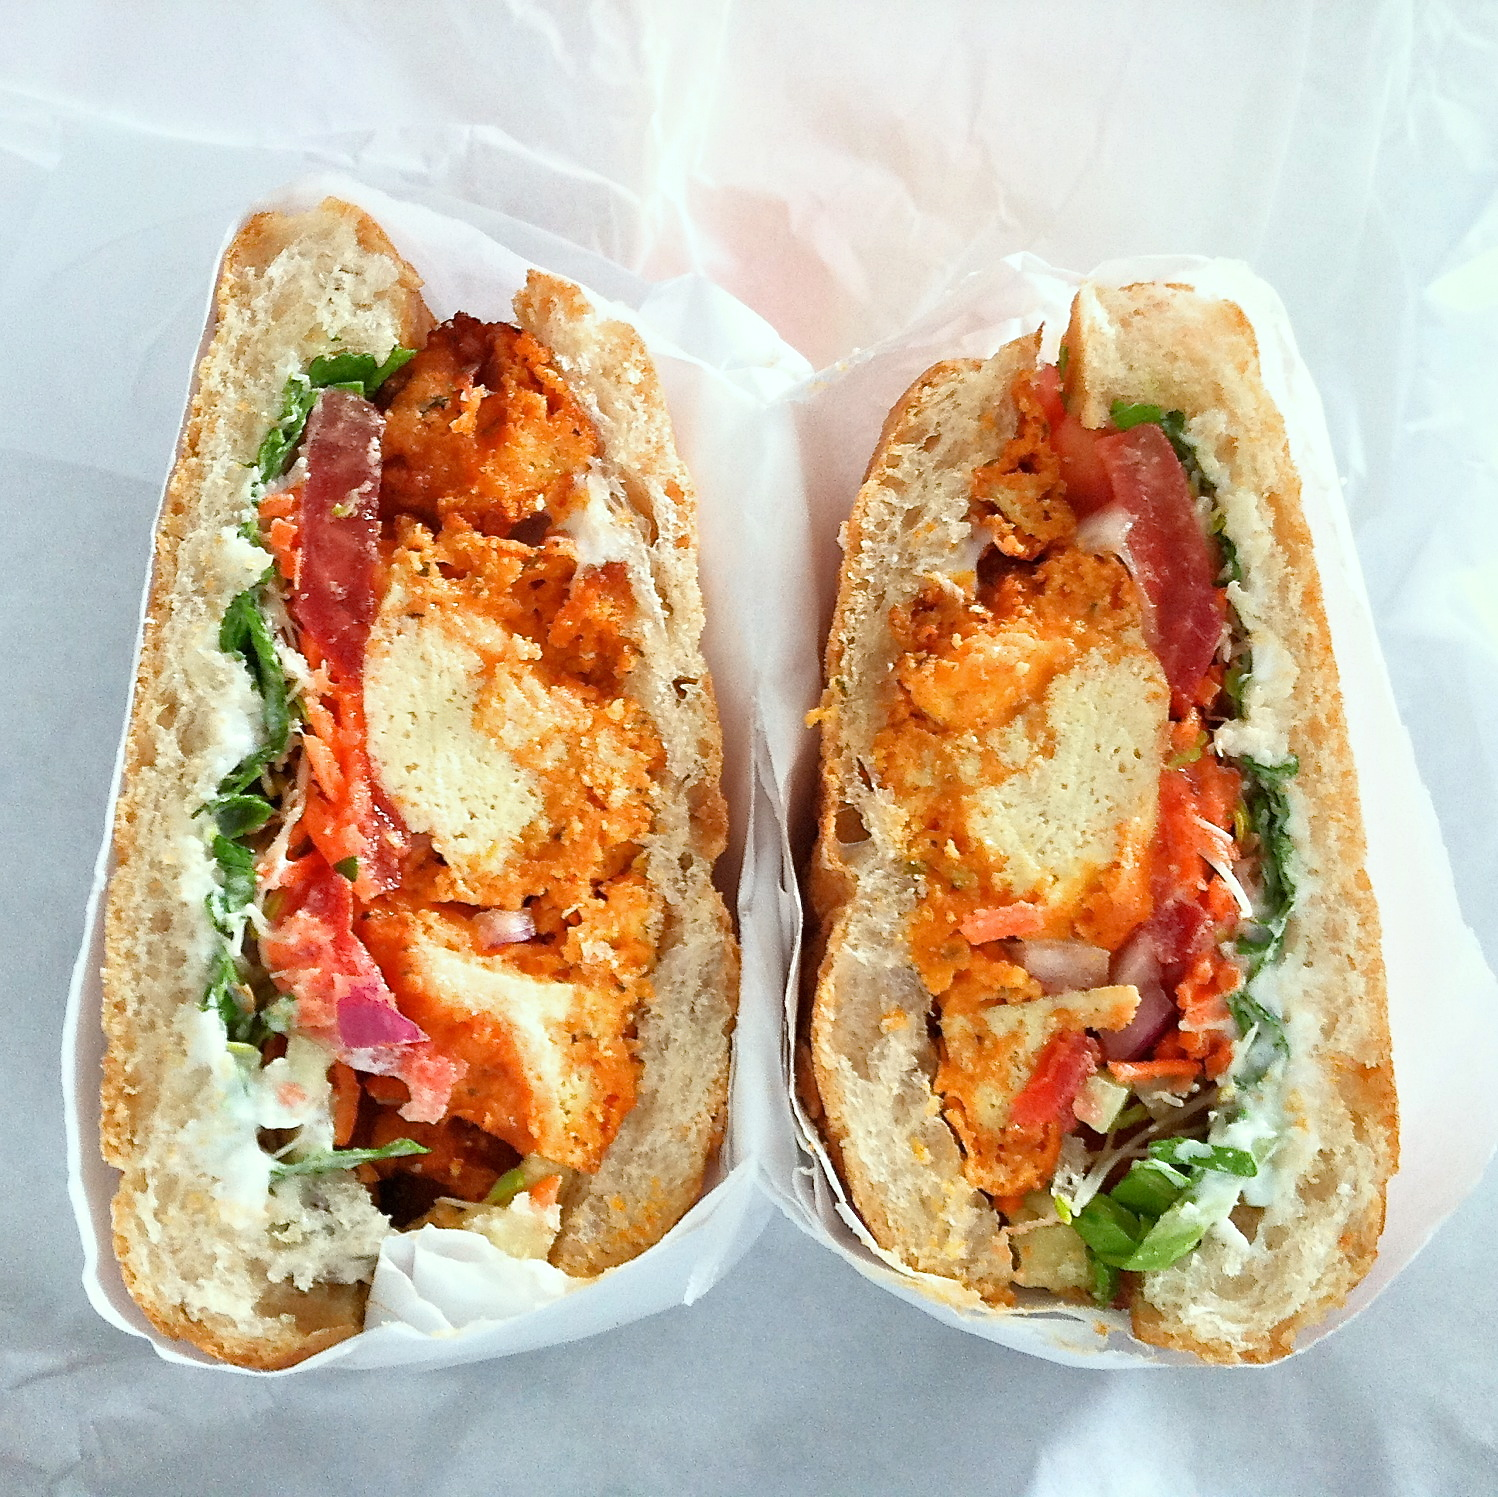 Buffalo Popcorn Tofu on Ciabatta from Wheatsville Coop